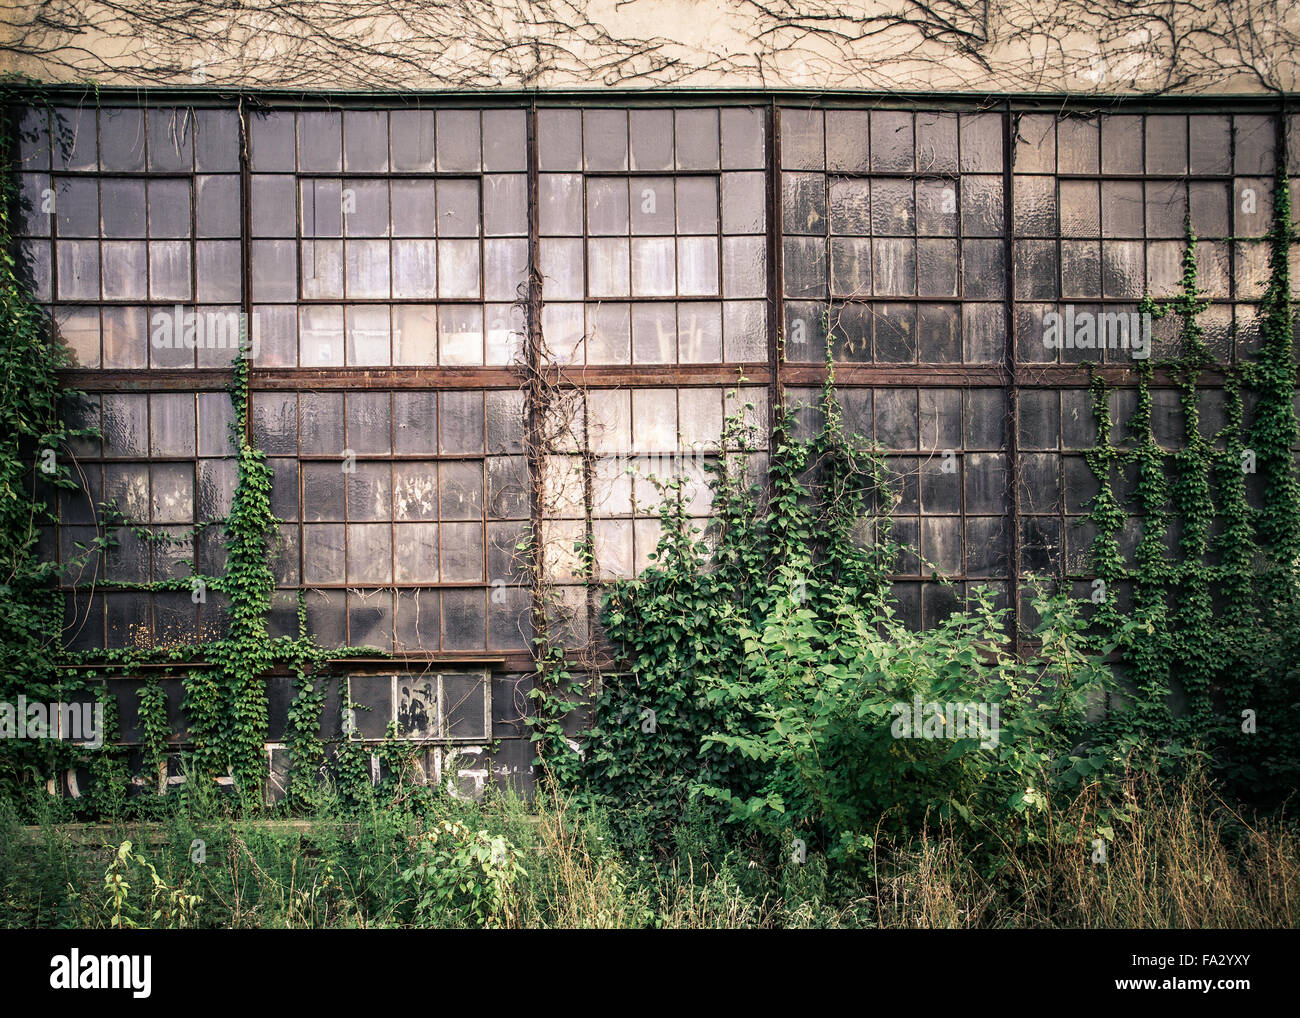 Grungy old industrial exterior with windows and overgrown vines and weeds - Stock Image